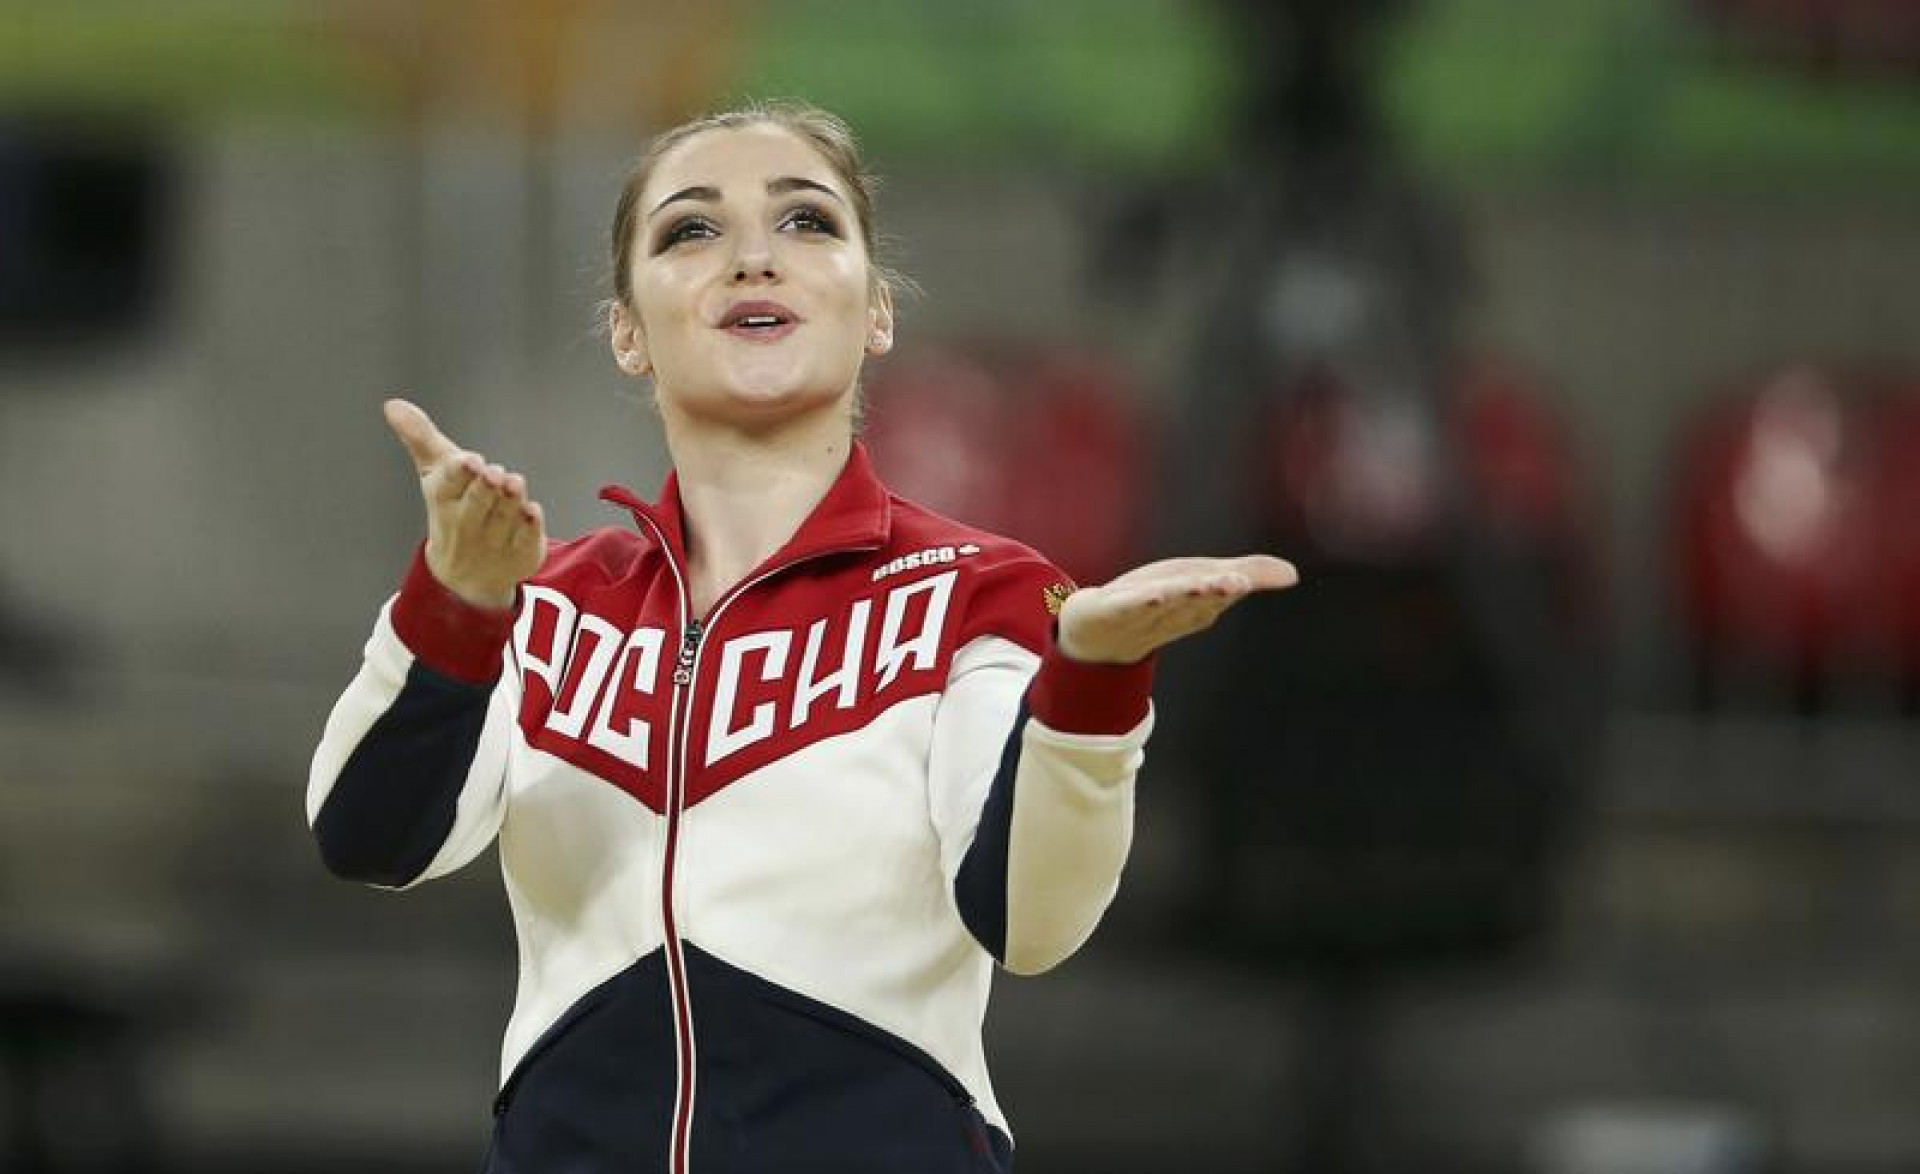 Mustafina Earns Russias First Gold; Tweddle Medals at Last